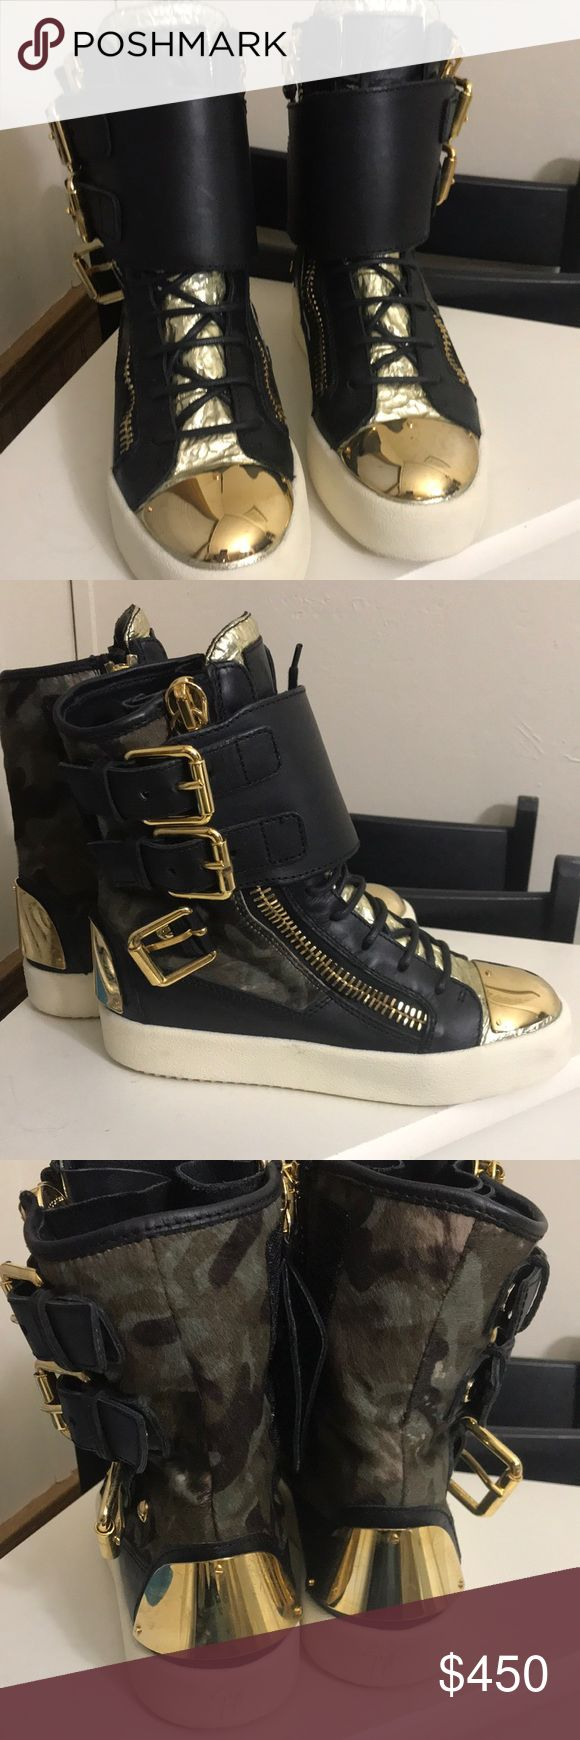 Giuseppe Zanotti Sneakers Giuseppe Zanotti sneakers - Camouflage pony hair and black leather high top sneakers. In extremely good condition. White soles. Comes with Dust Bag and Box - Giuseppe Zanotti Shoes Sneakers